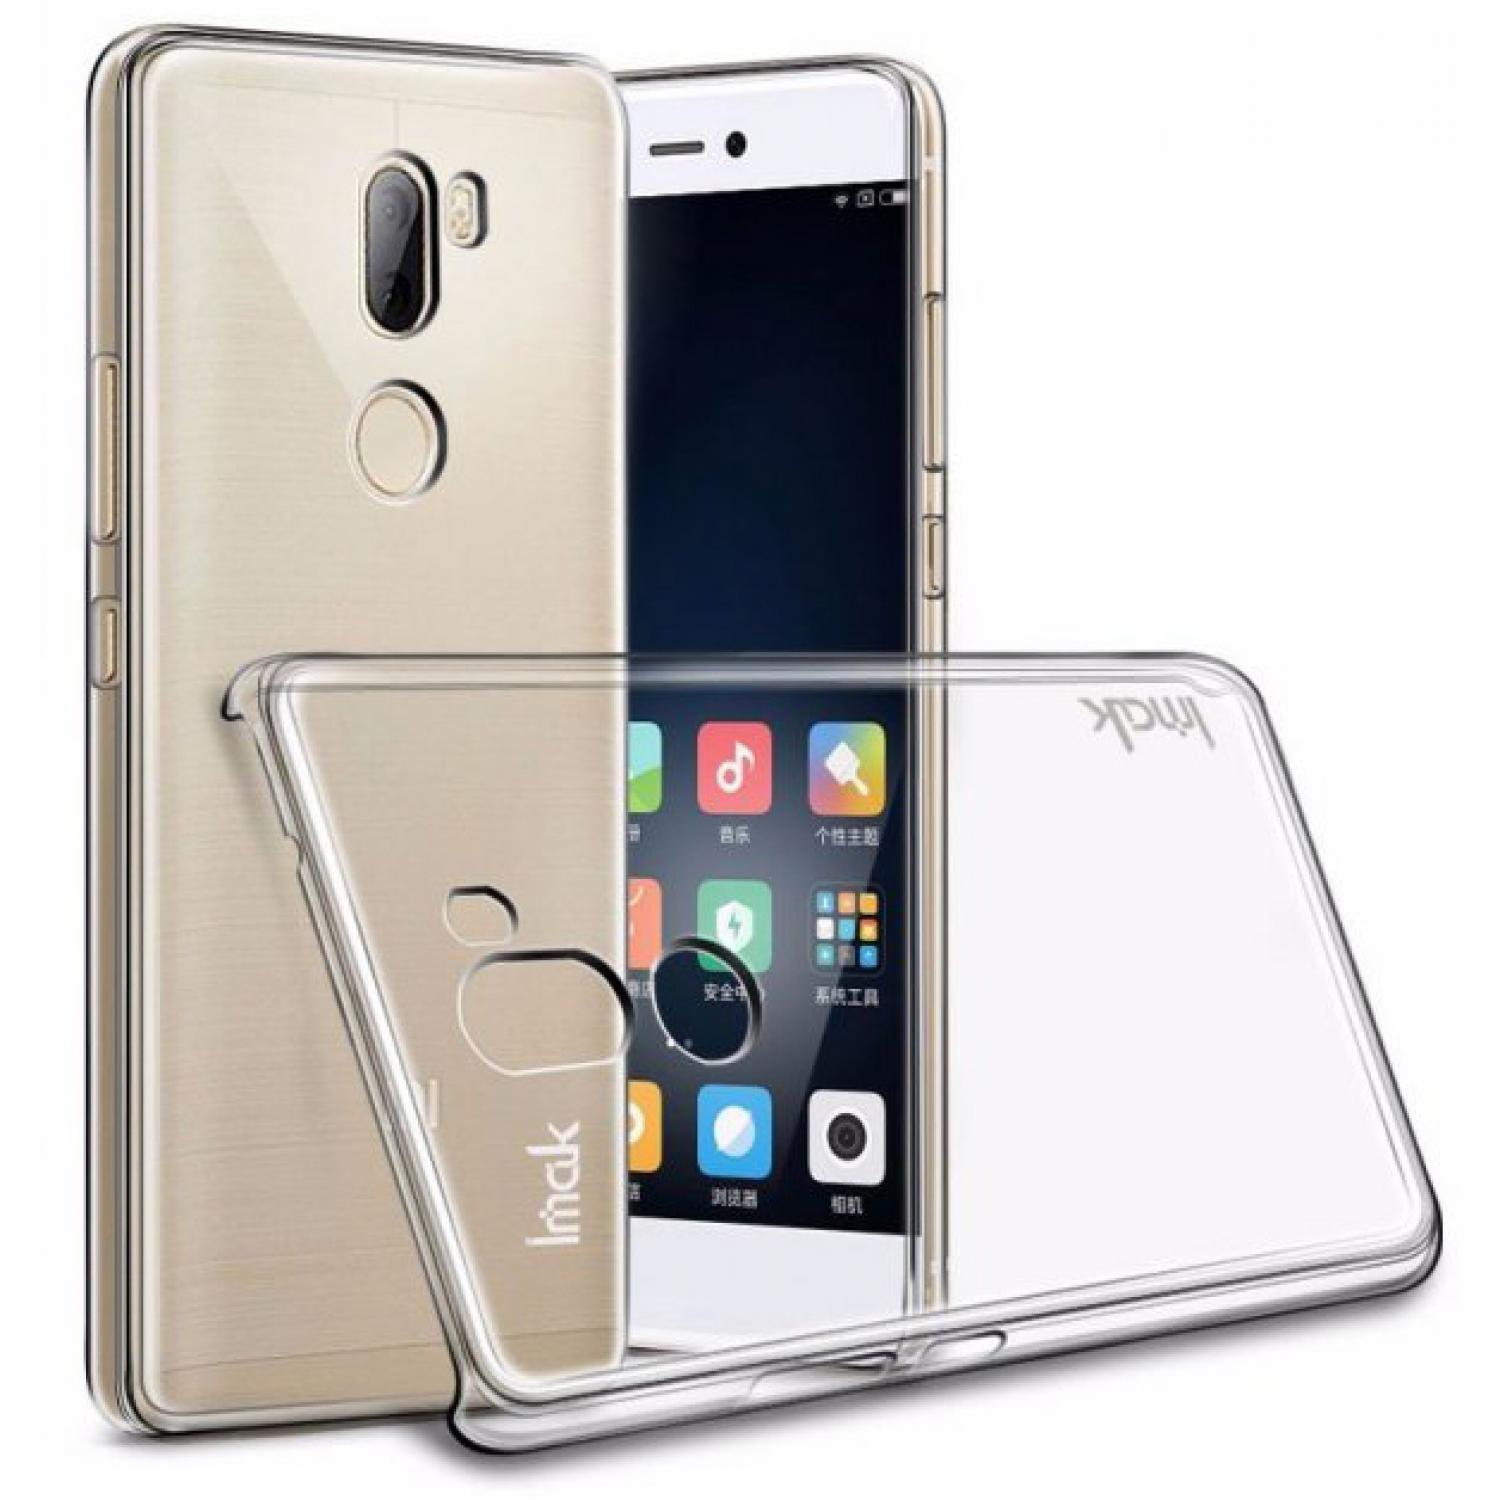 Imak Crystal 2 Ultra Thin Hard Case for Xiaomi Mi5s Plus | Pelindung